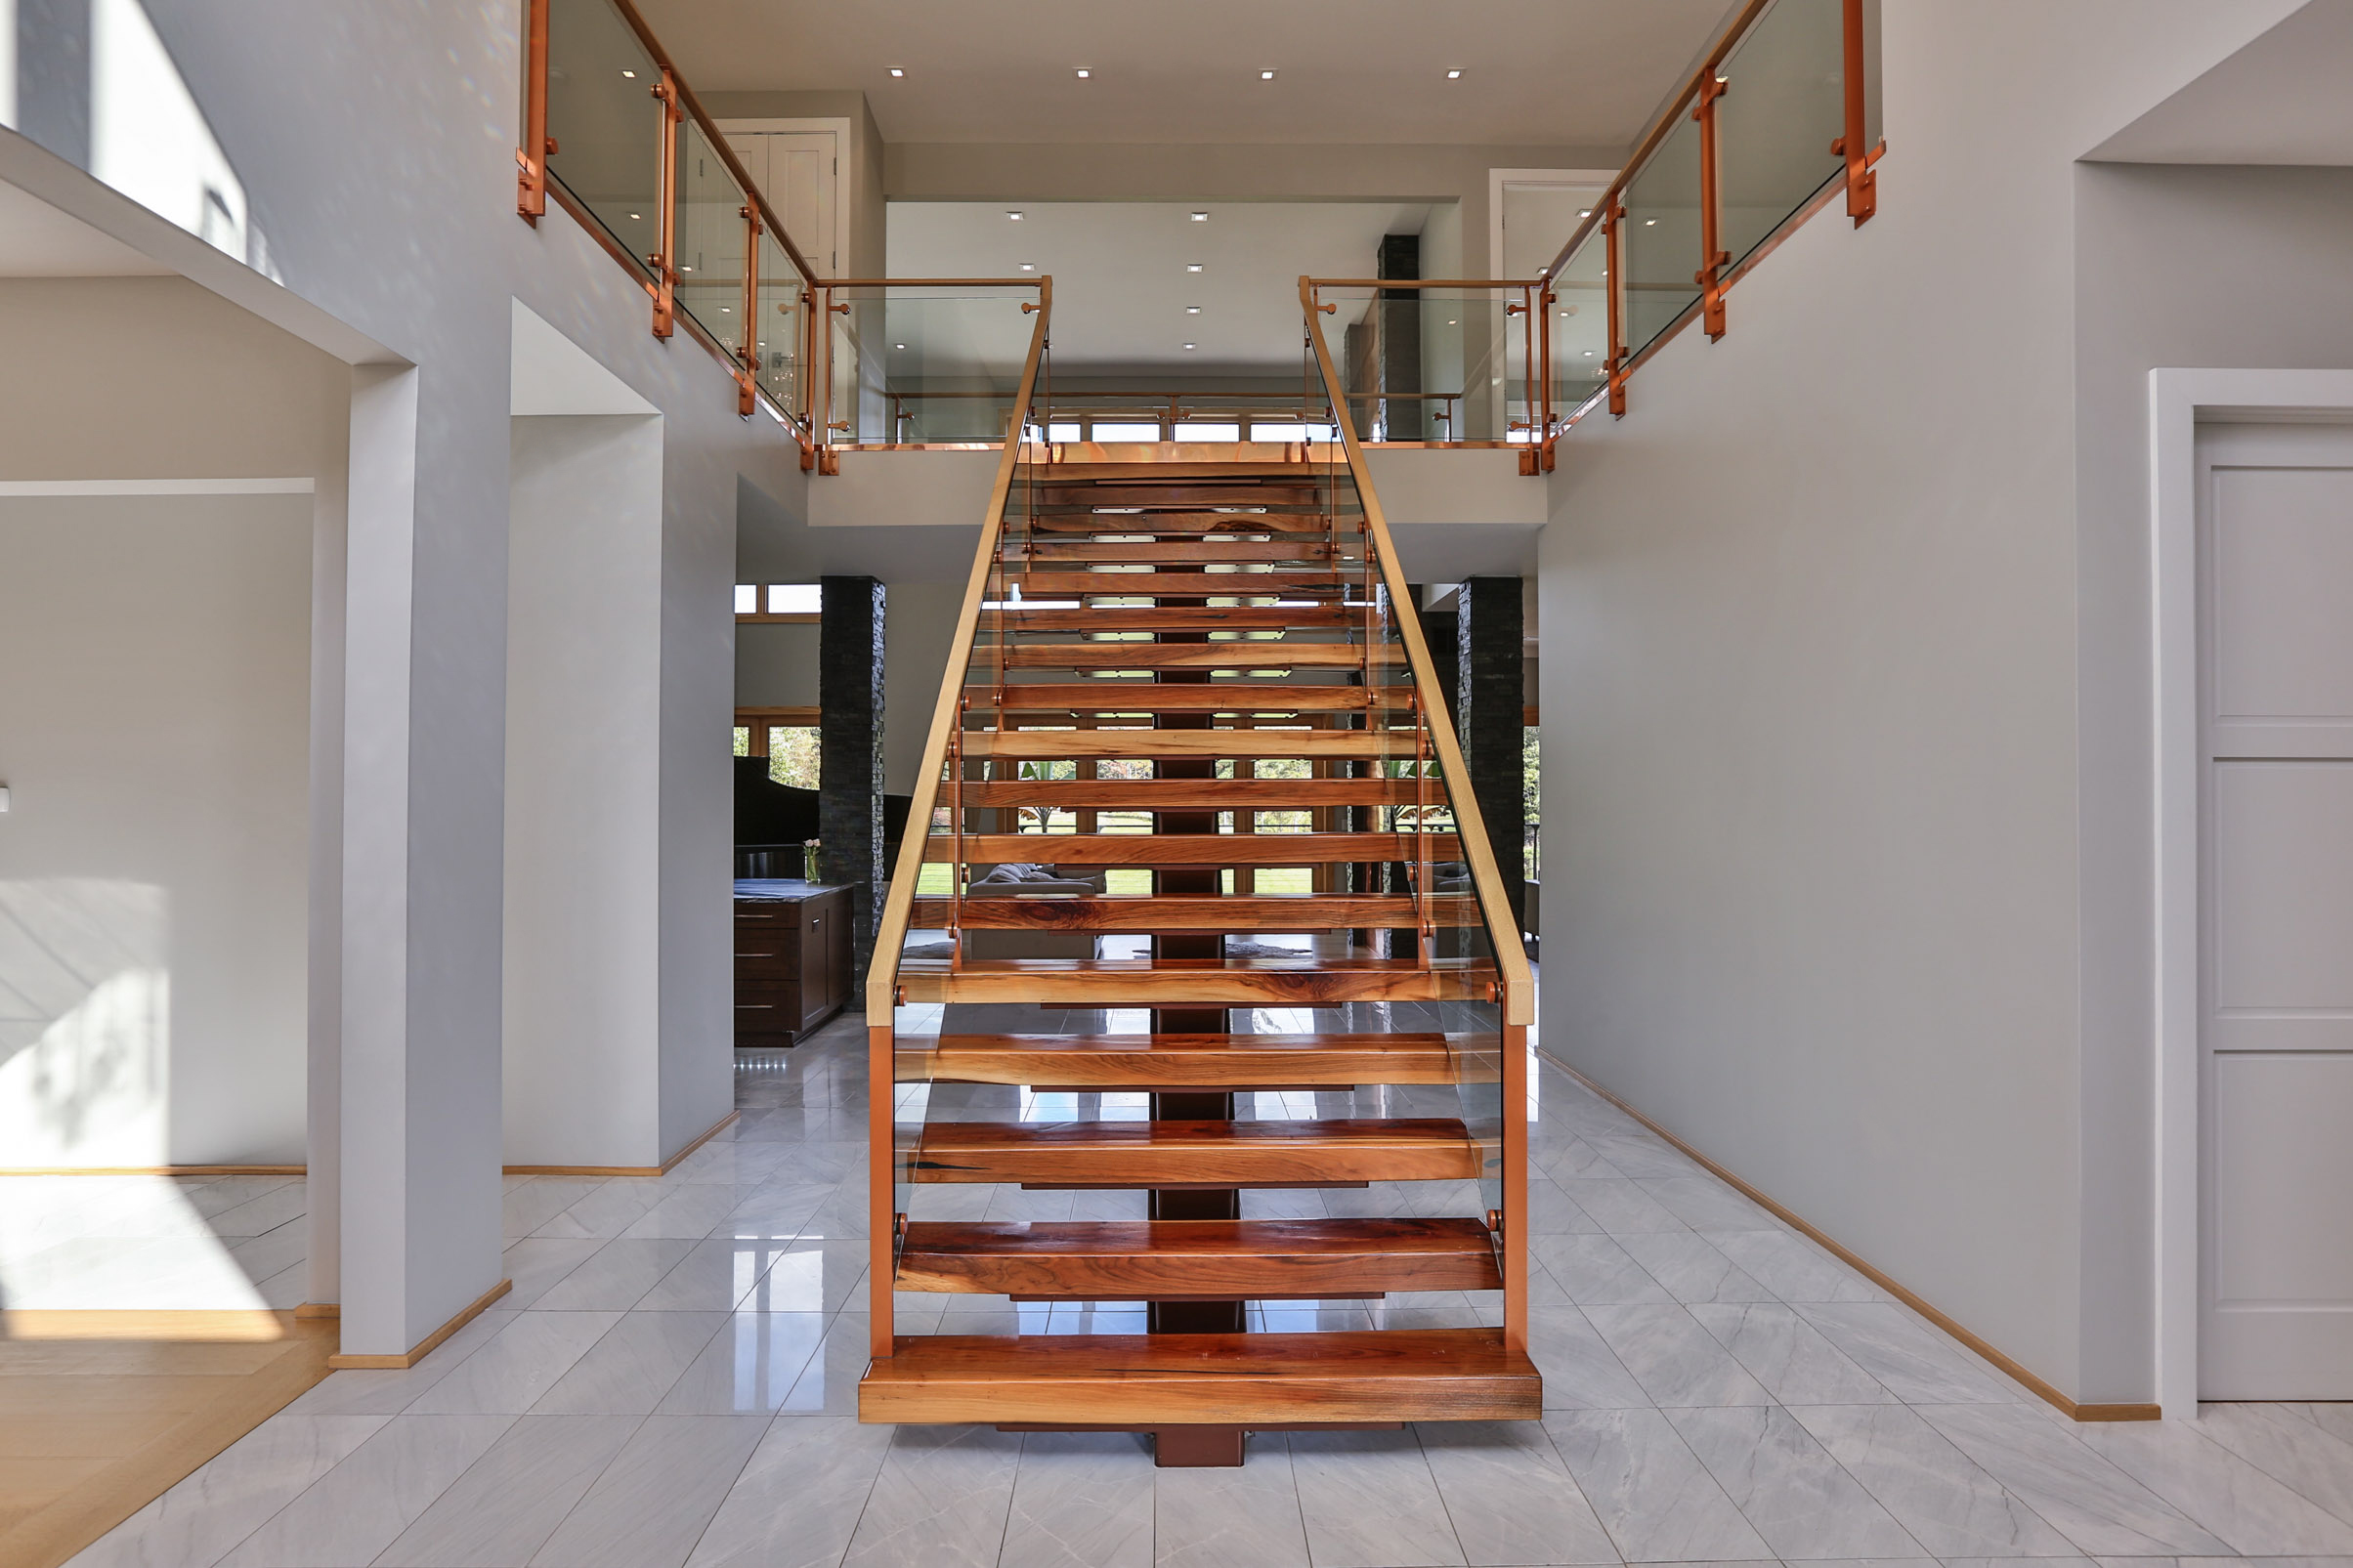 Floating mono stringer staircase with glass railing